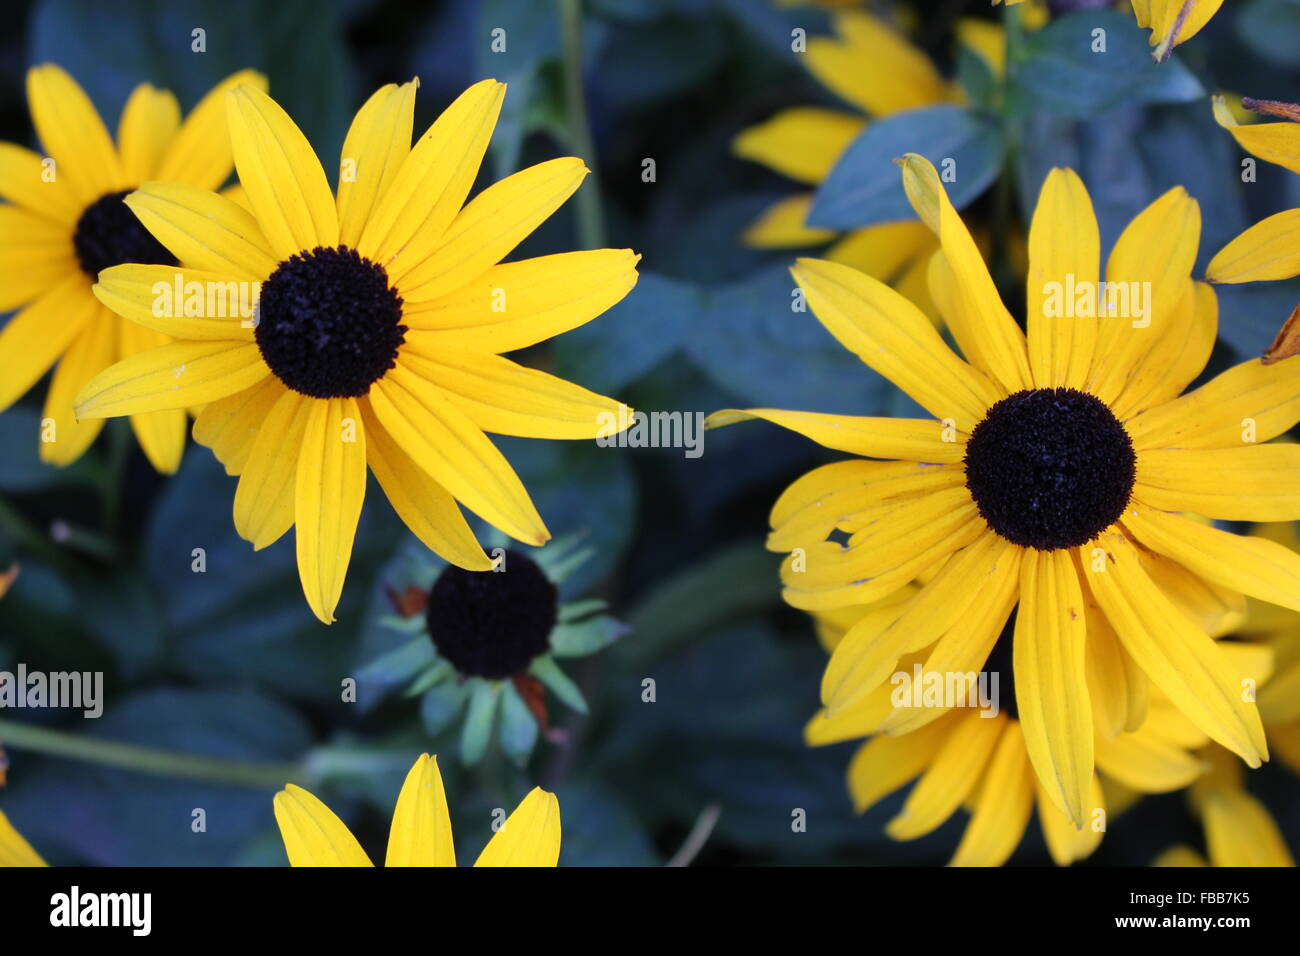 picture of sunhat 'Sonnenhut' flowers in a Garden - Stock Image